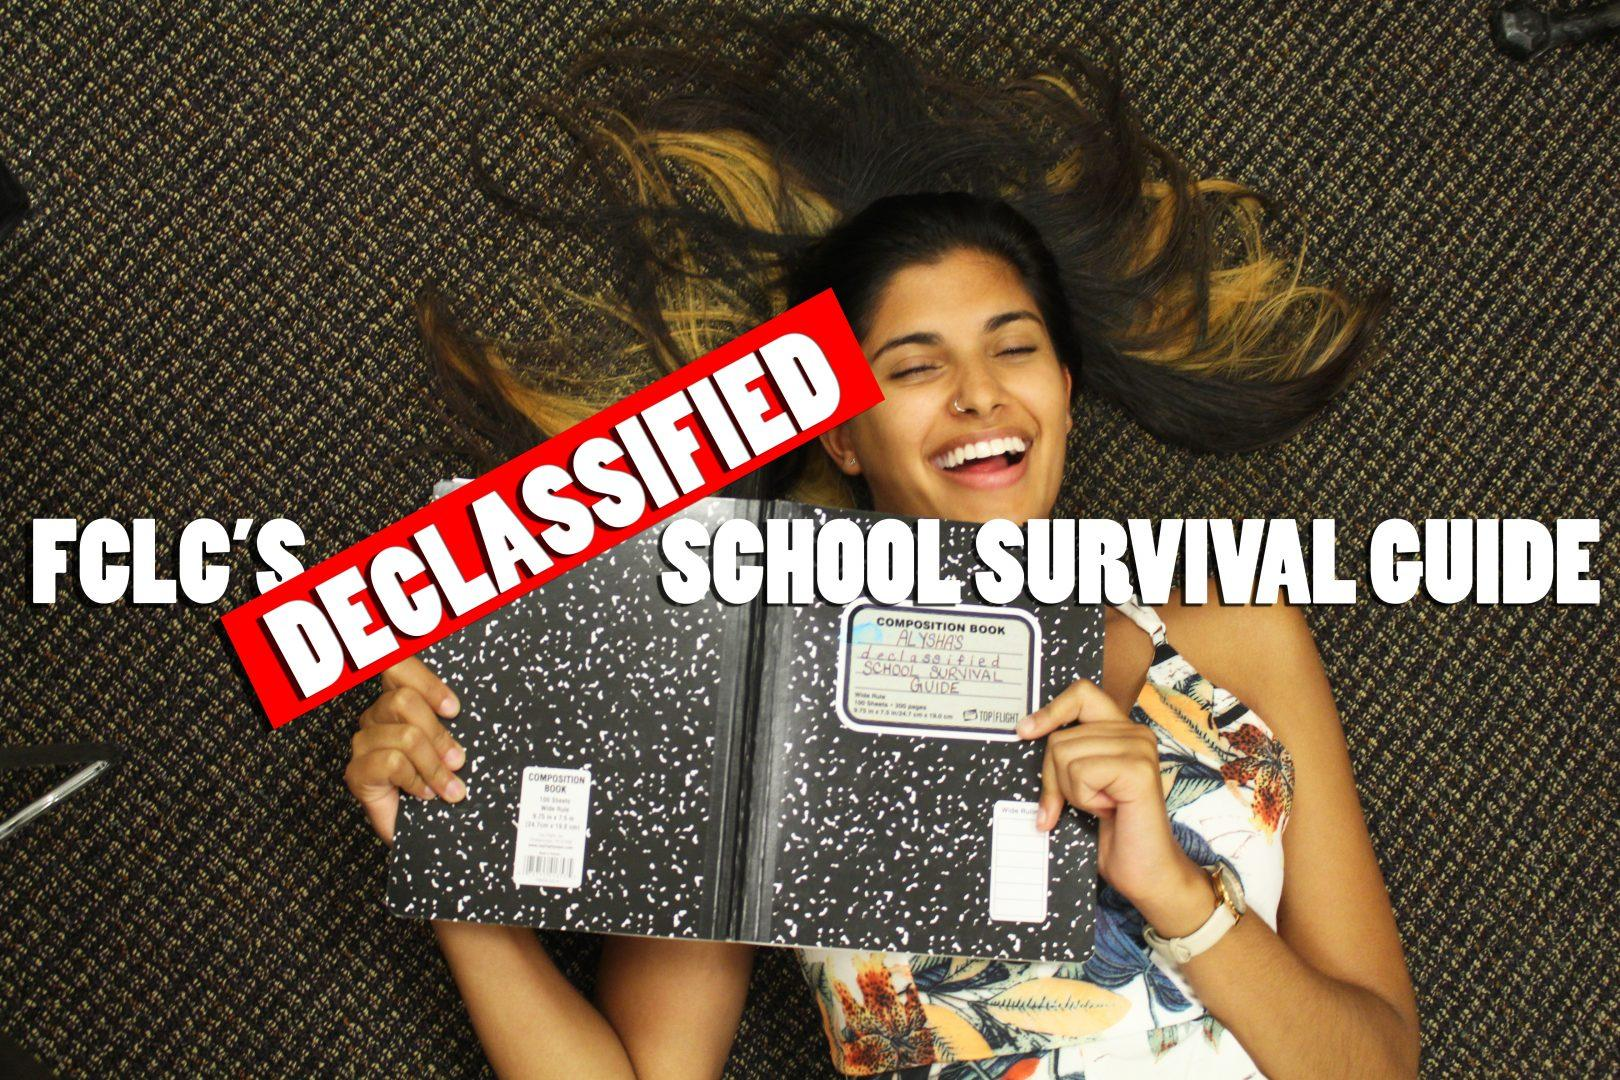 FCLC's Declassified School Survival Guide: Funny Ways to Make Friends